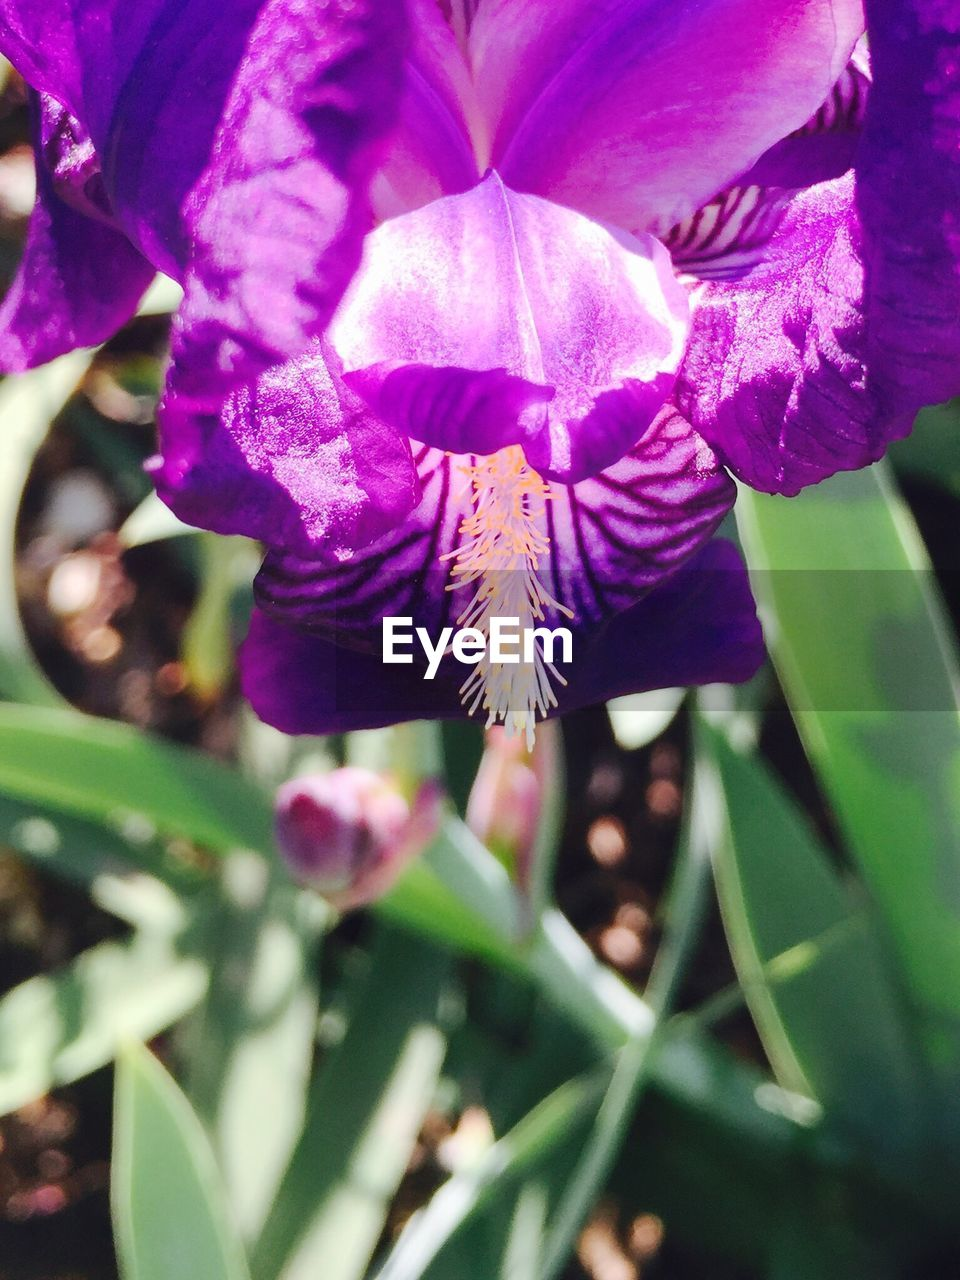 flower, growth, beauty in nature, petal, fragility, purple, nature, freshness, day, close-up, plant, outdoors, selective focus, no people, flower head, blooming, iris - plant